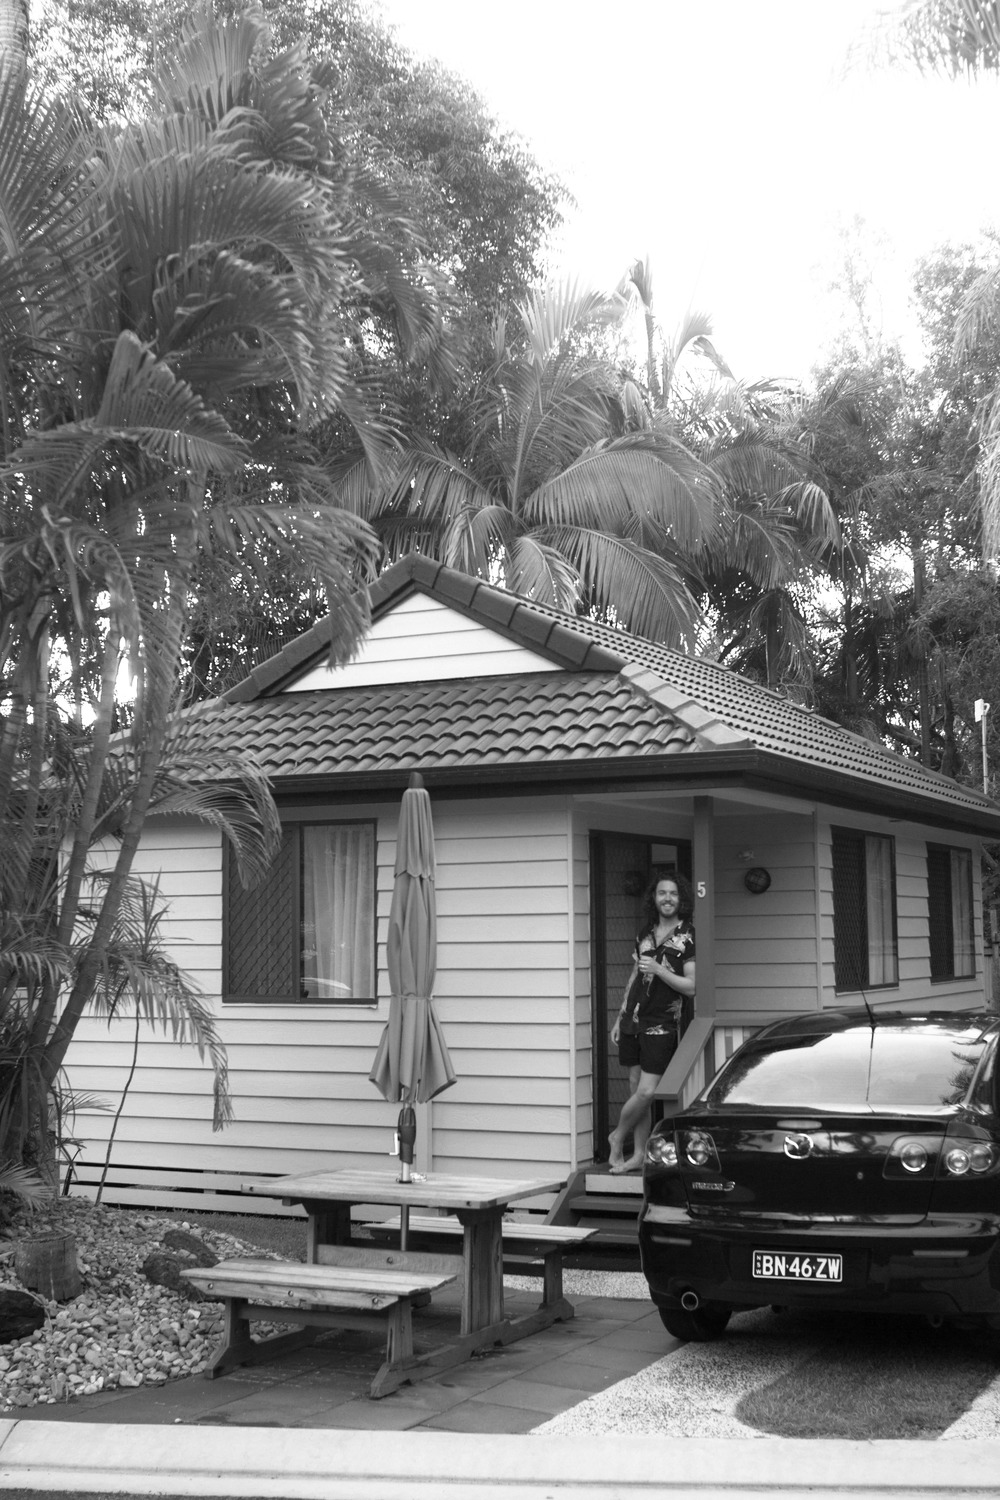 Our Byron Bay Bungalow